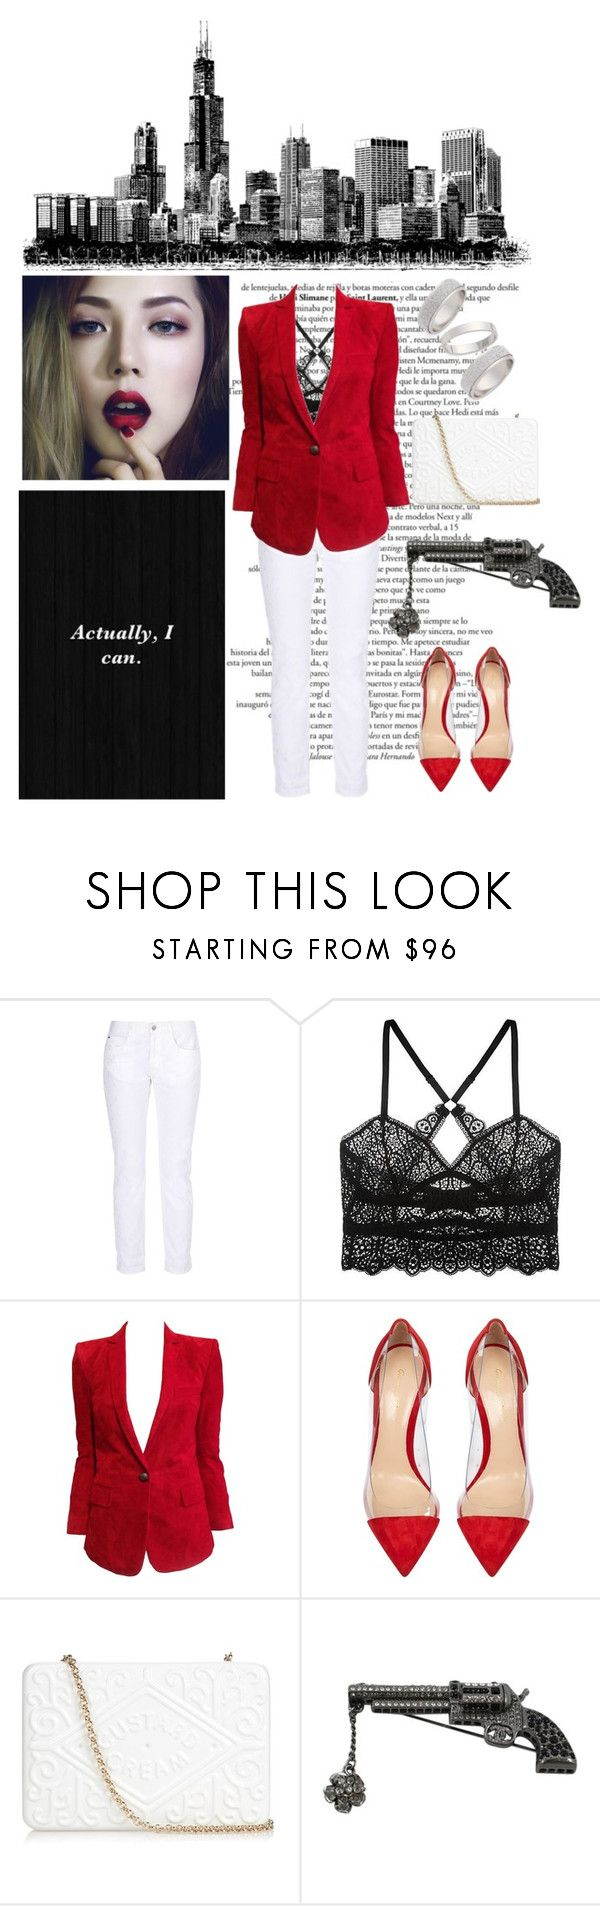 """Dangerous"" by sparrows-and-poppy on Polyvore featuring STELLA McCARTNEY, ELSE, Balmain, Gianvito Rossi, Anya Hindmarch, Chanel, Topshop, women's clothing, women's fashion and women"